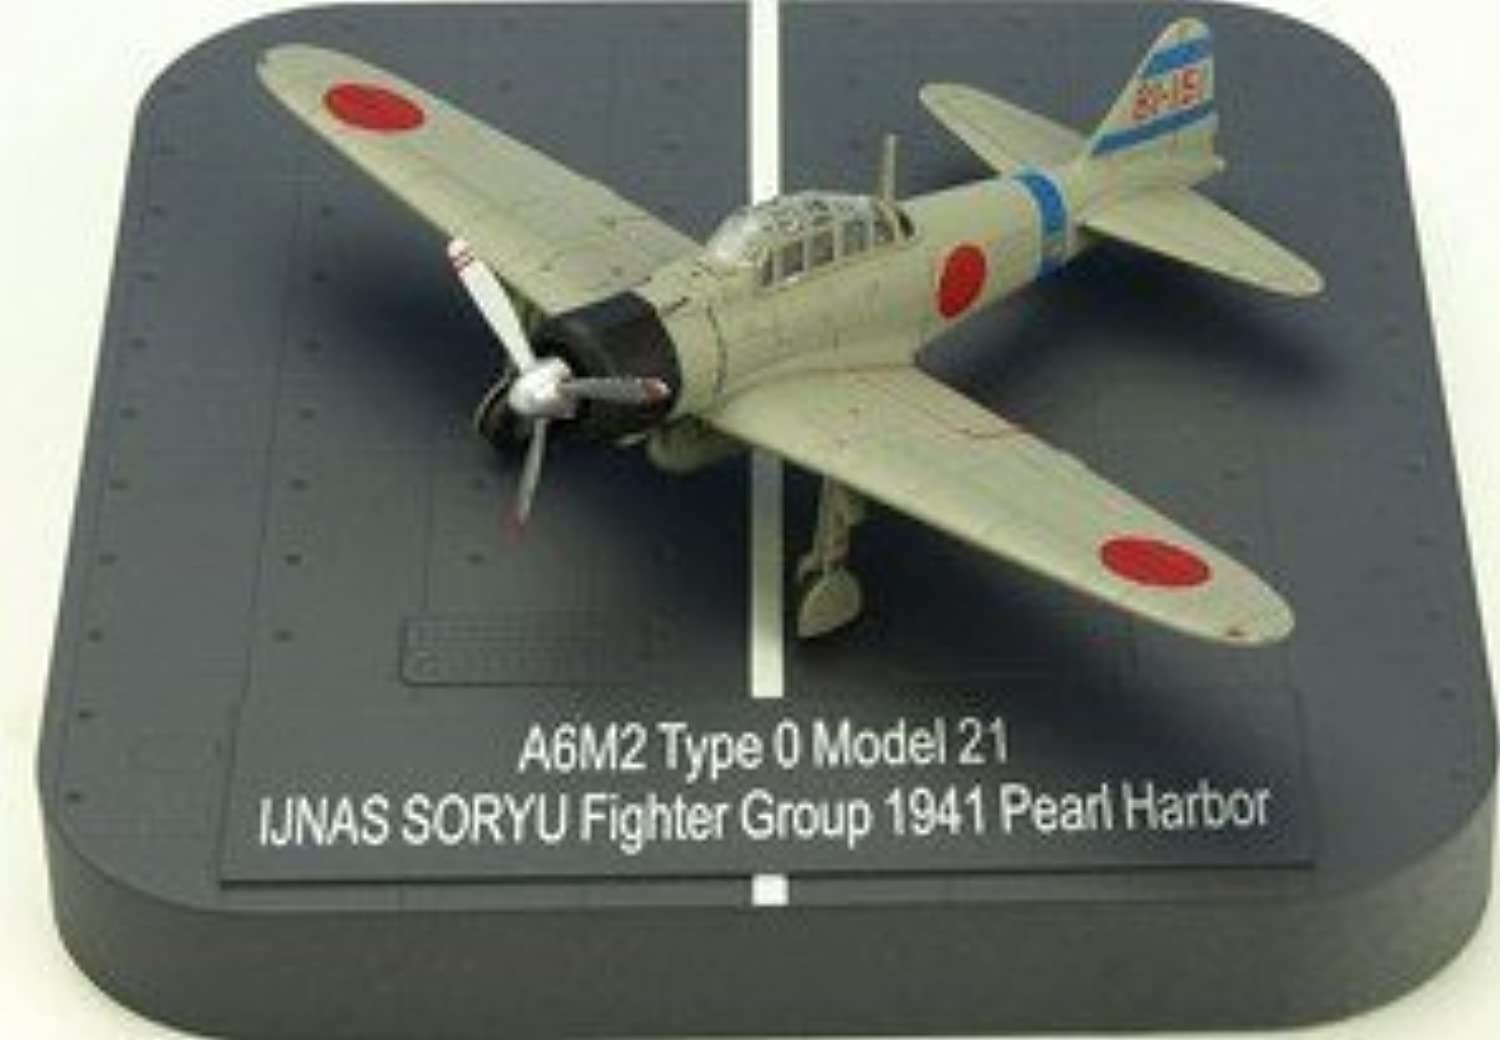 X PLUS A6M2 Zero Model 21 IJNAS SORYU Fighter Group BI151 1941 Pearl Harbor (Japan import   The package and the manual are written in Japanese)